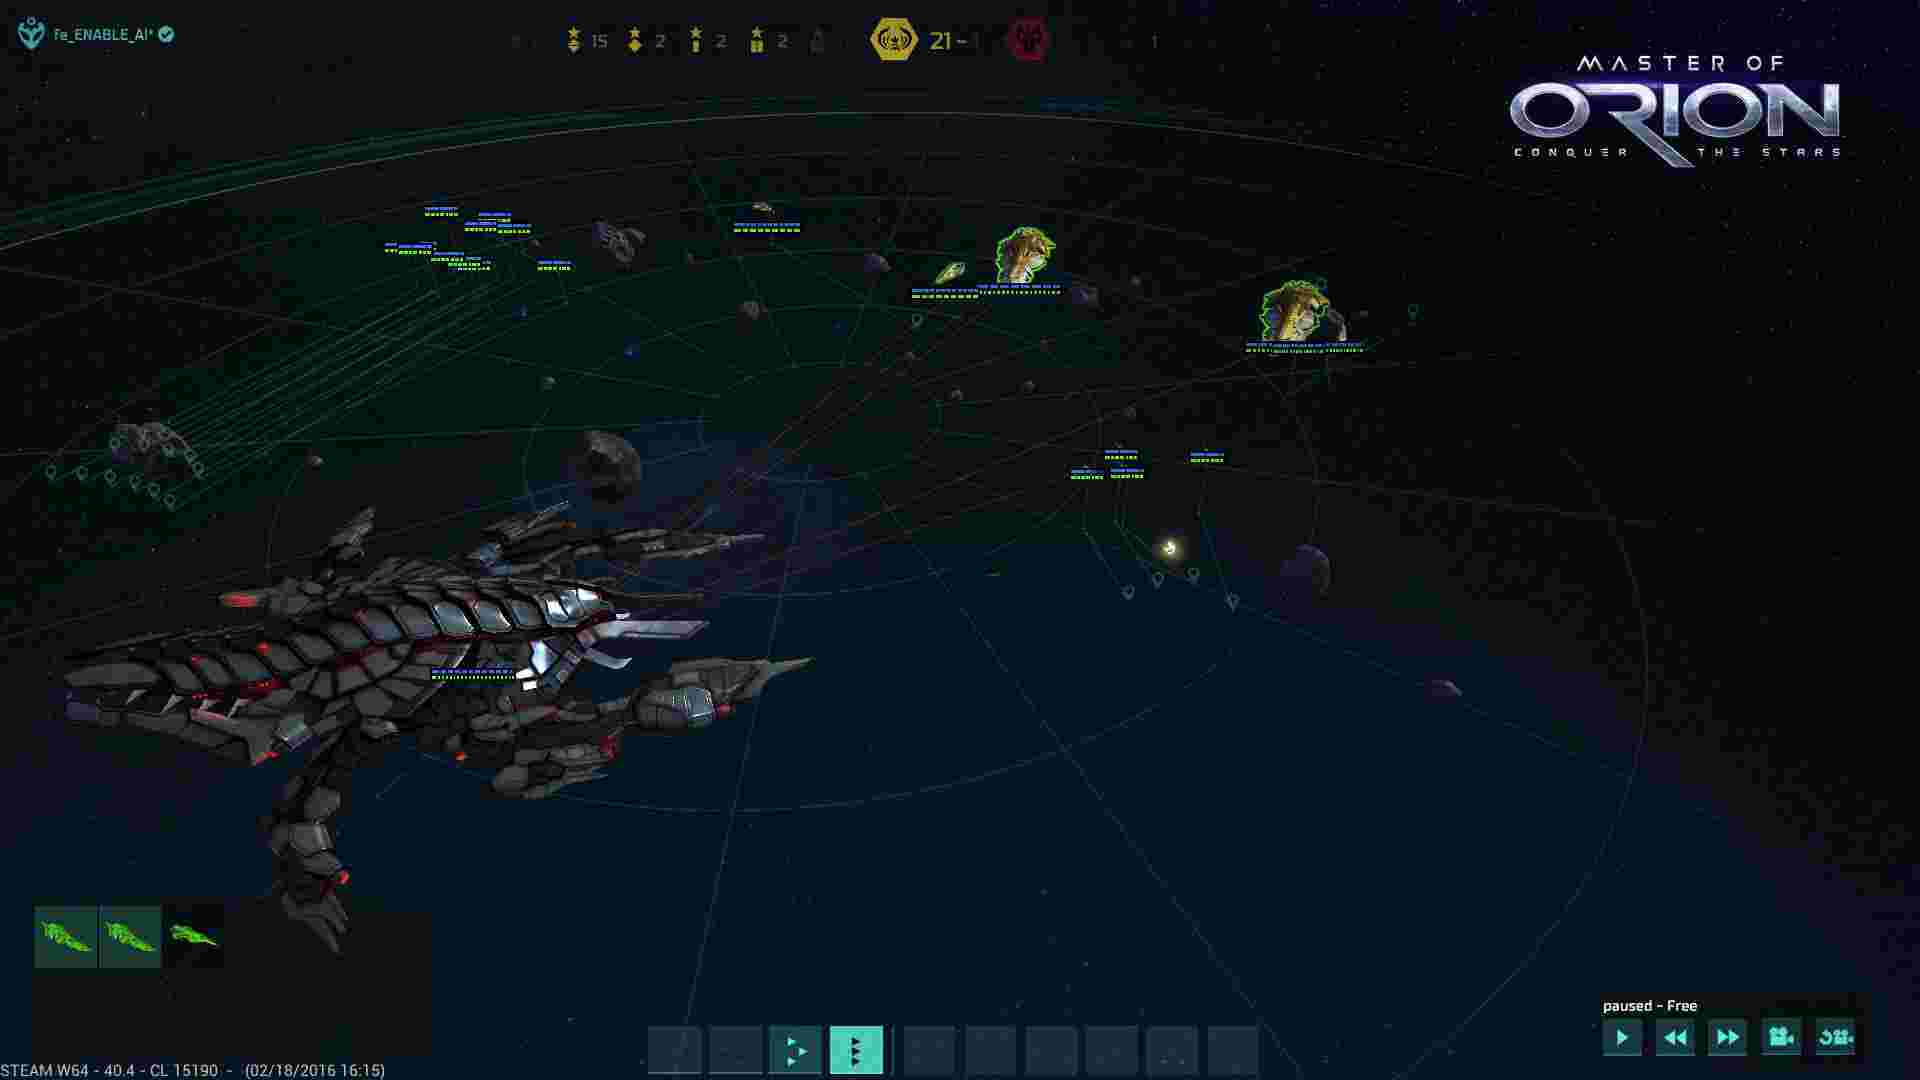 news.moo_screens_gameplay_early_access_image_06